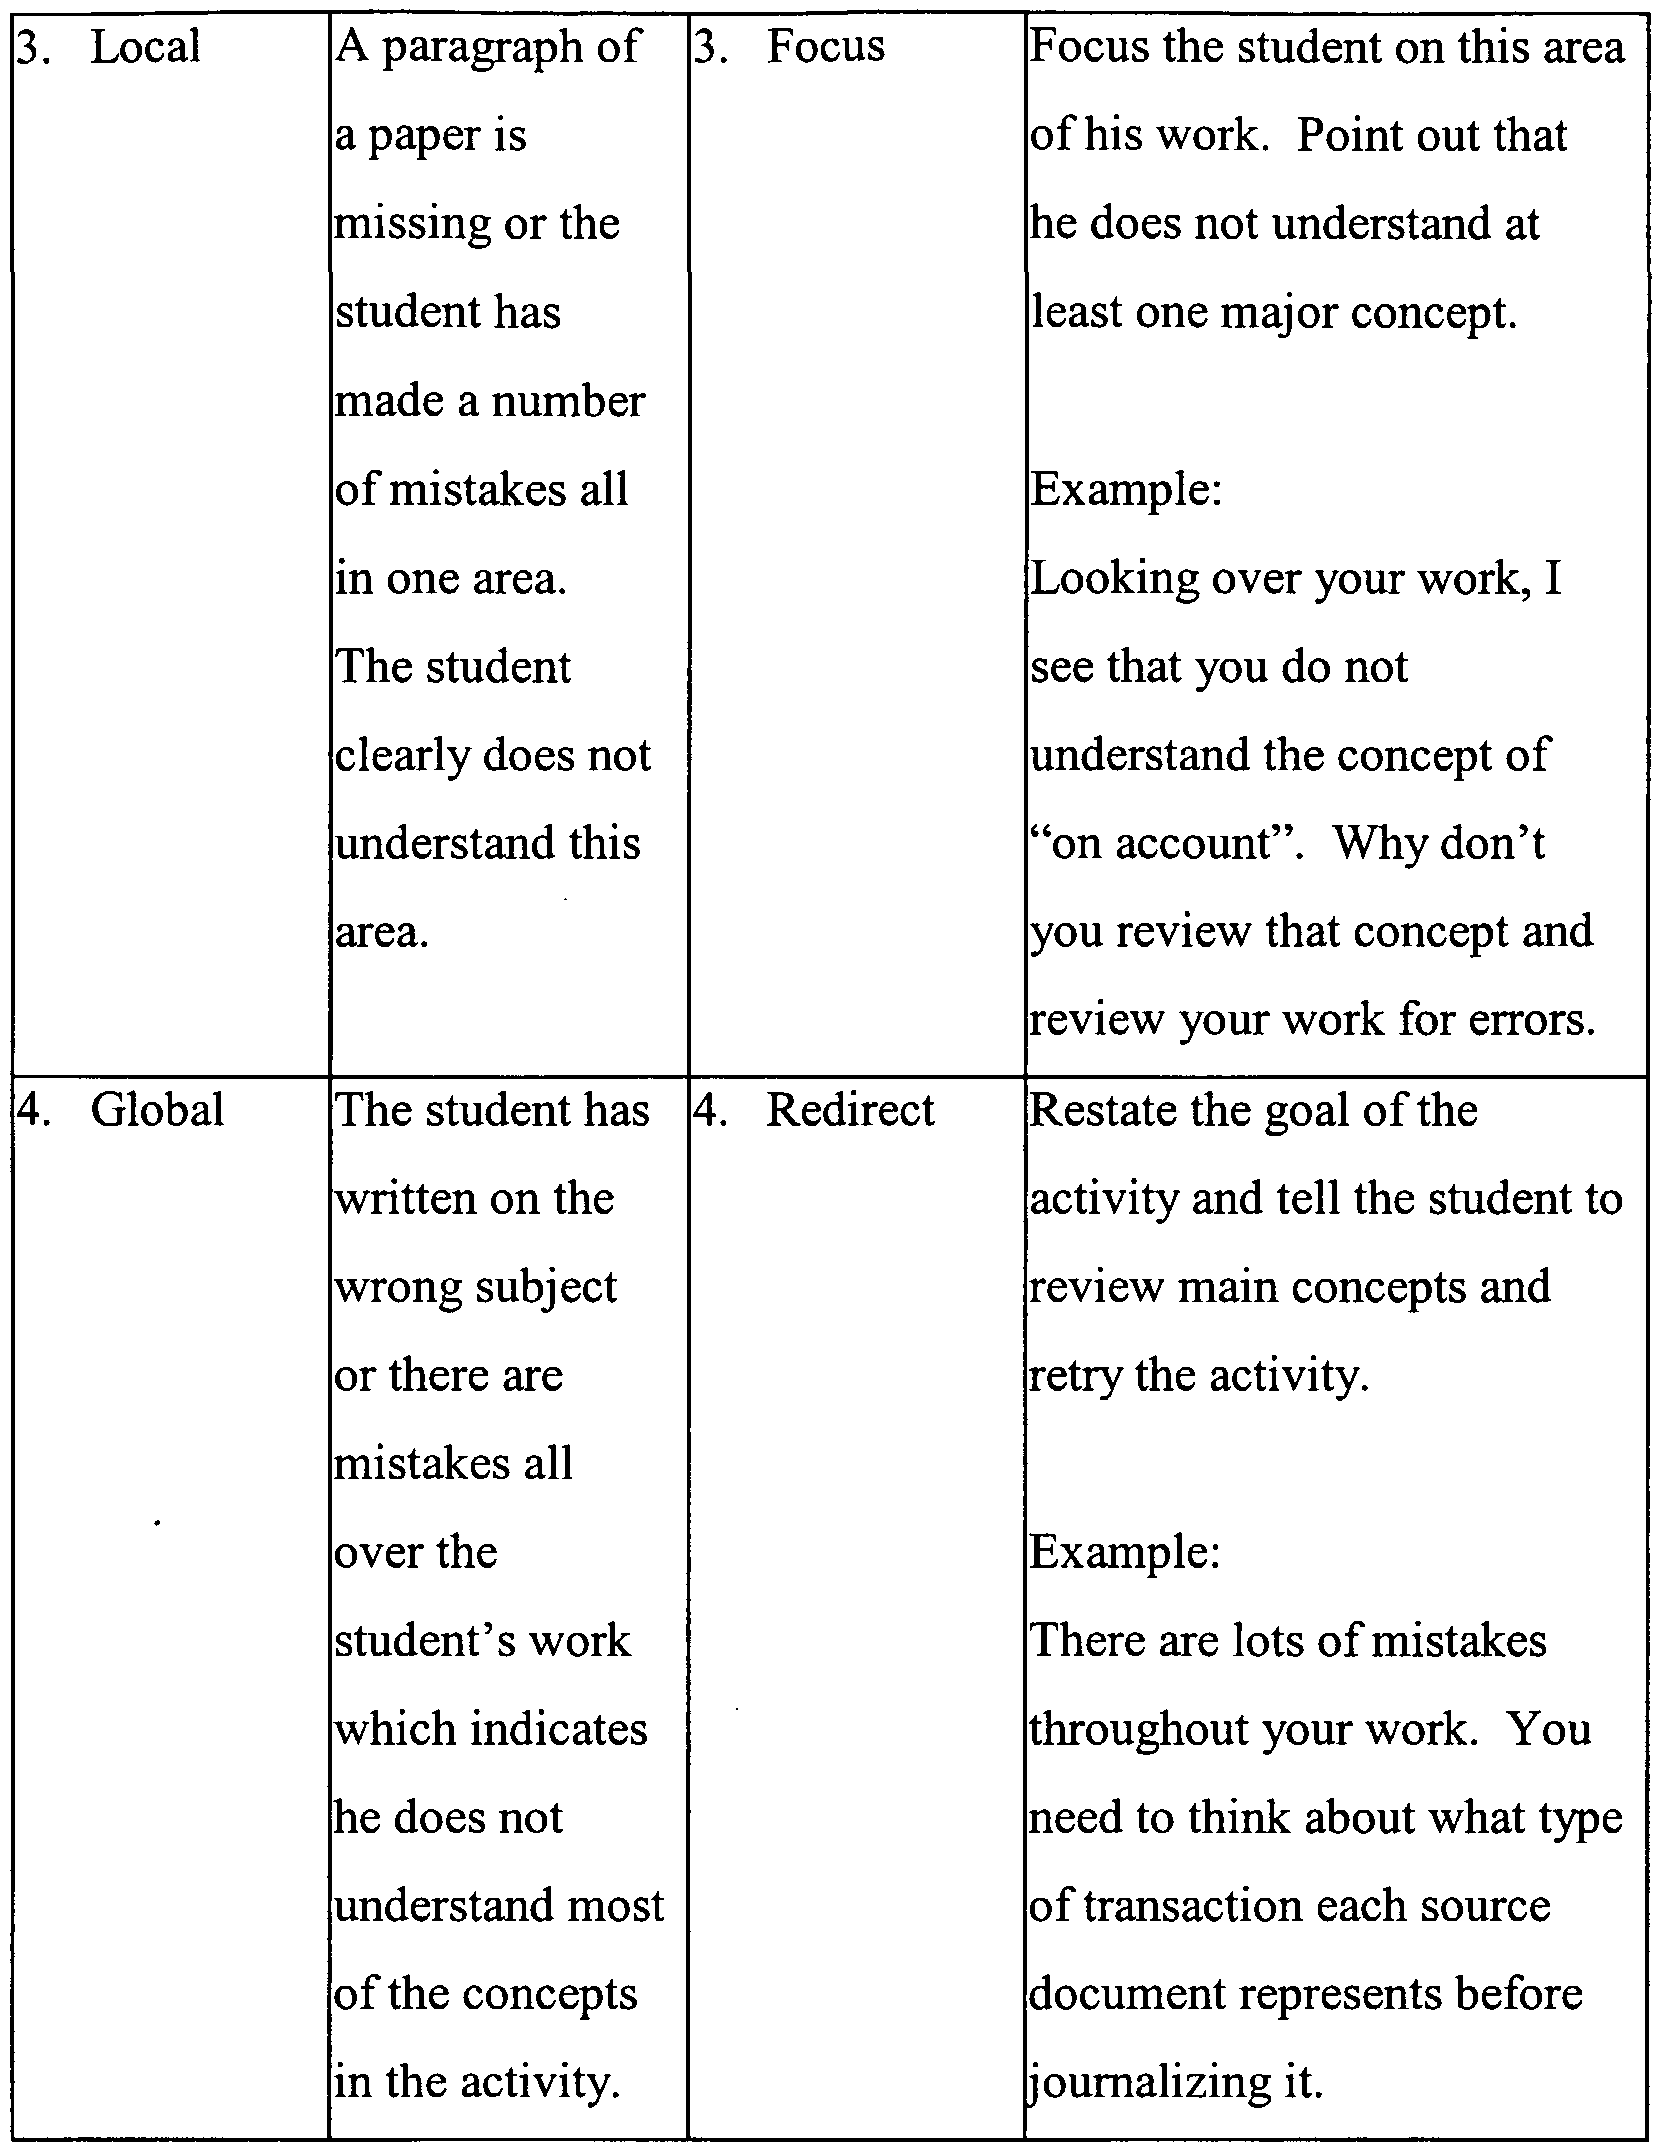 Printables Cell City Analogy Worksheet Answers